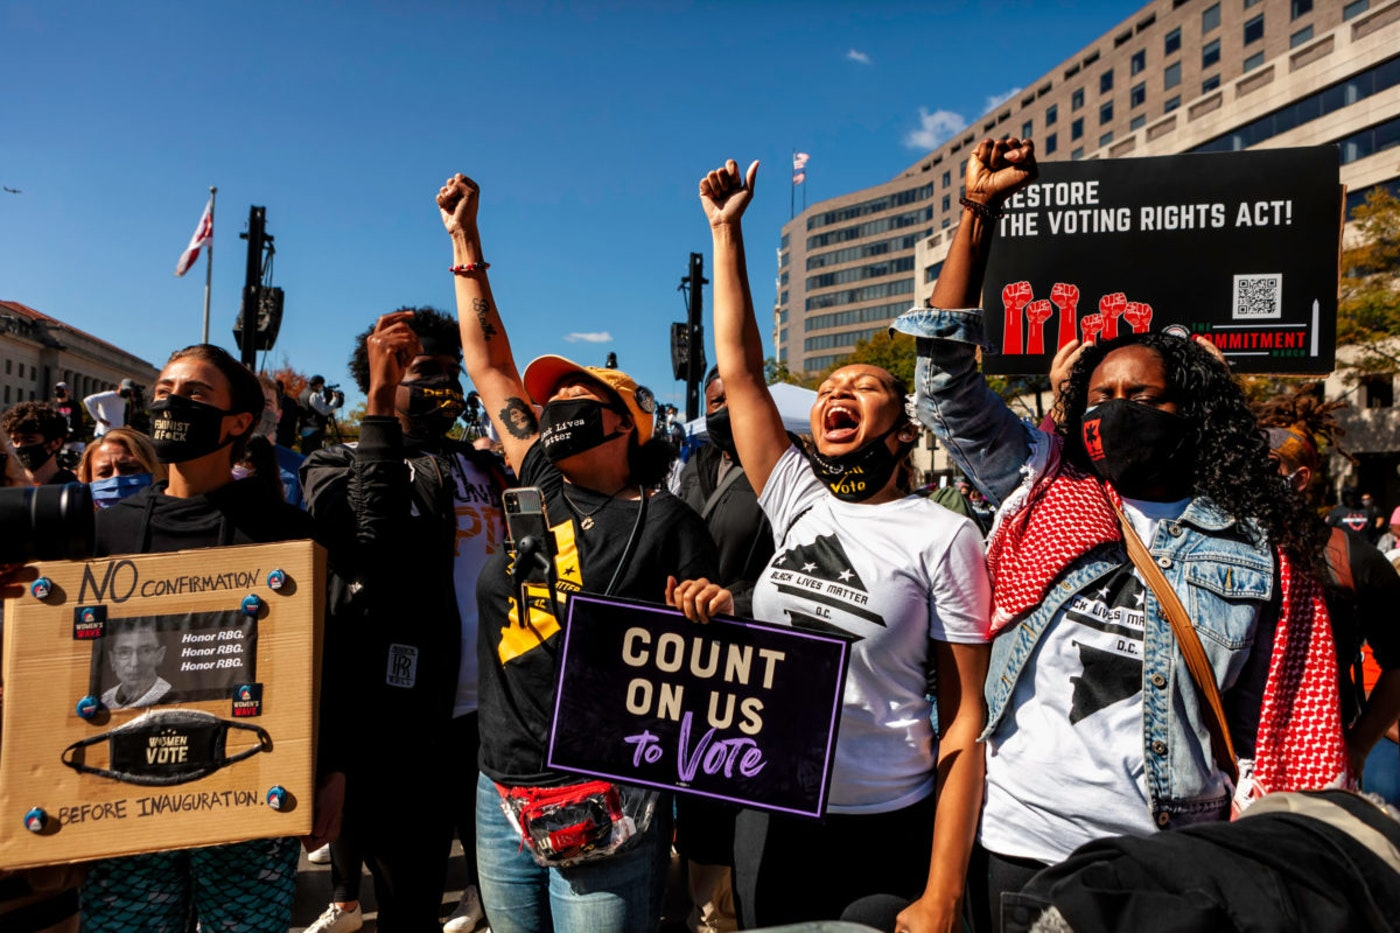 Washington Black Lives Matter activists raise their fists and cheer a colleague who is speaking to the Women's March on Oct. 17, 2020. Image via Shutterstock.